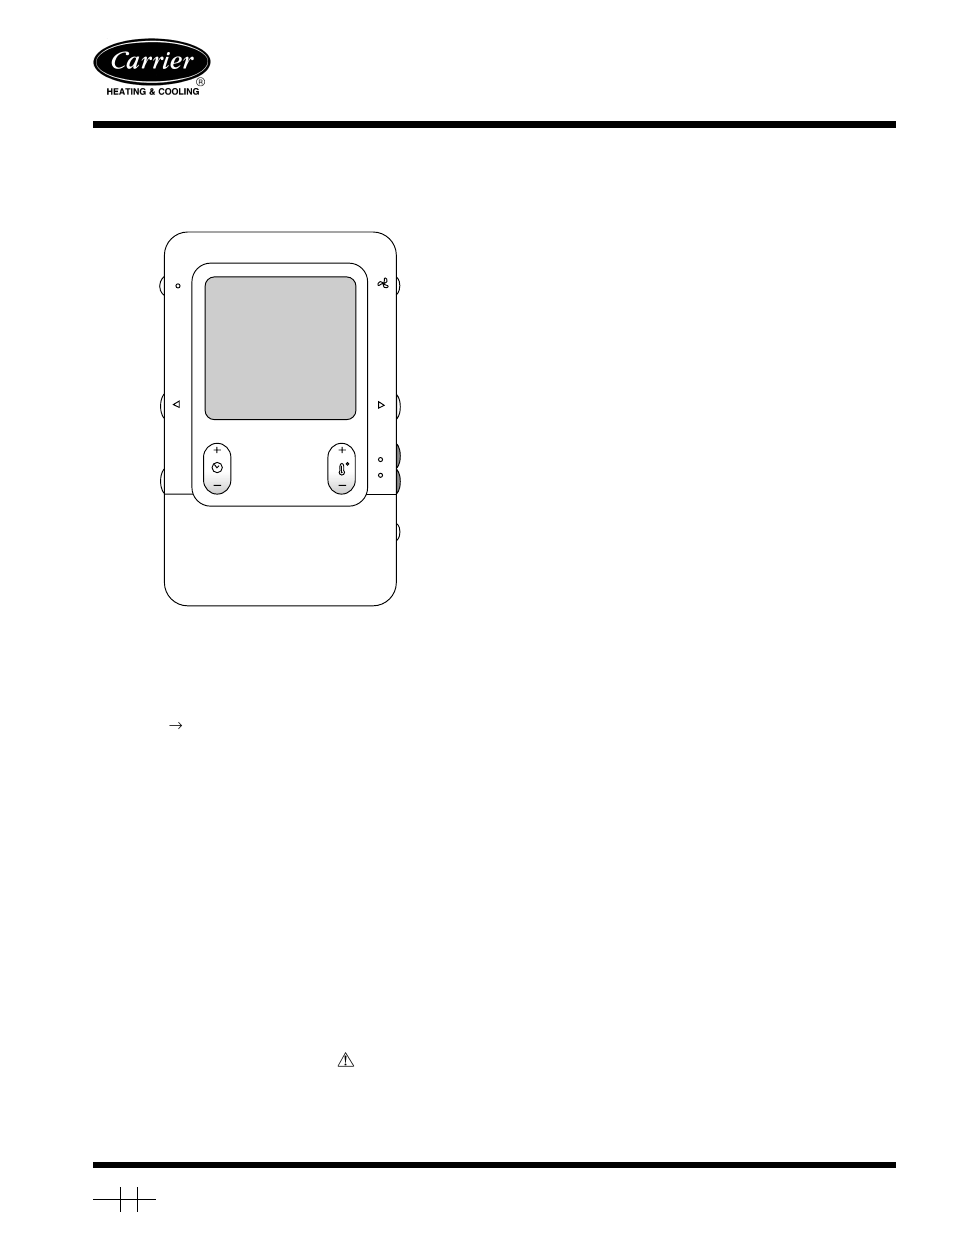 Carrier Infinity Systxccuid Page on electrical wiring safety